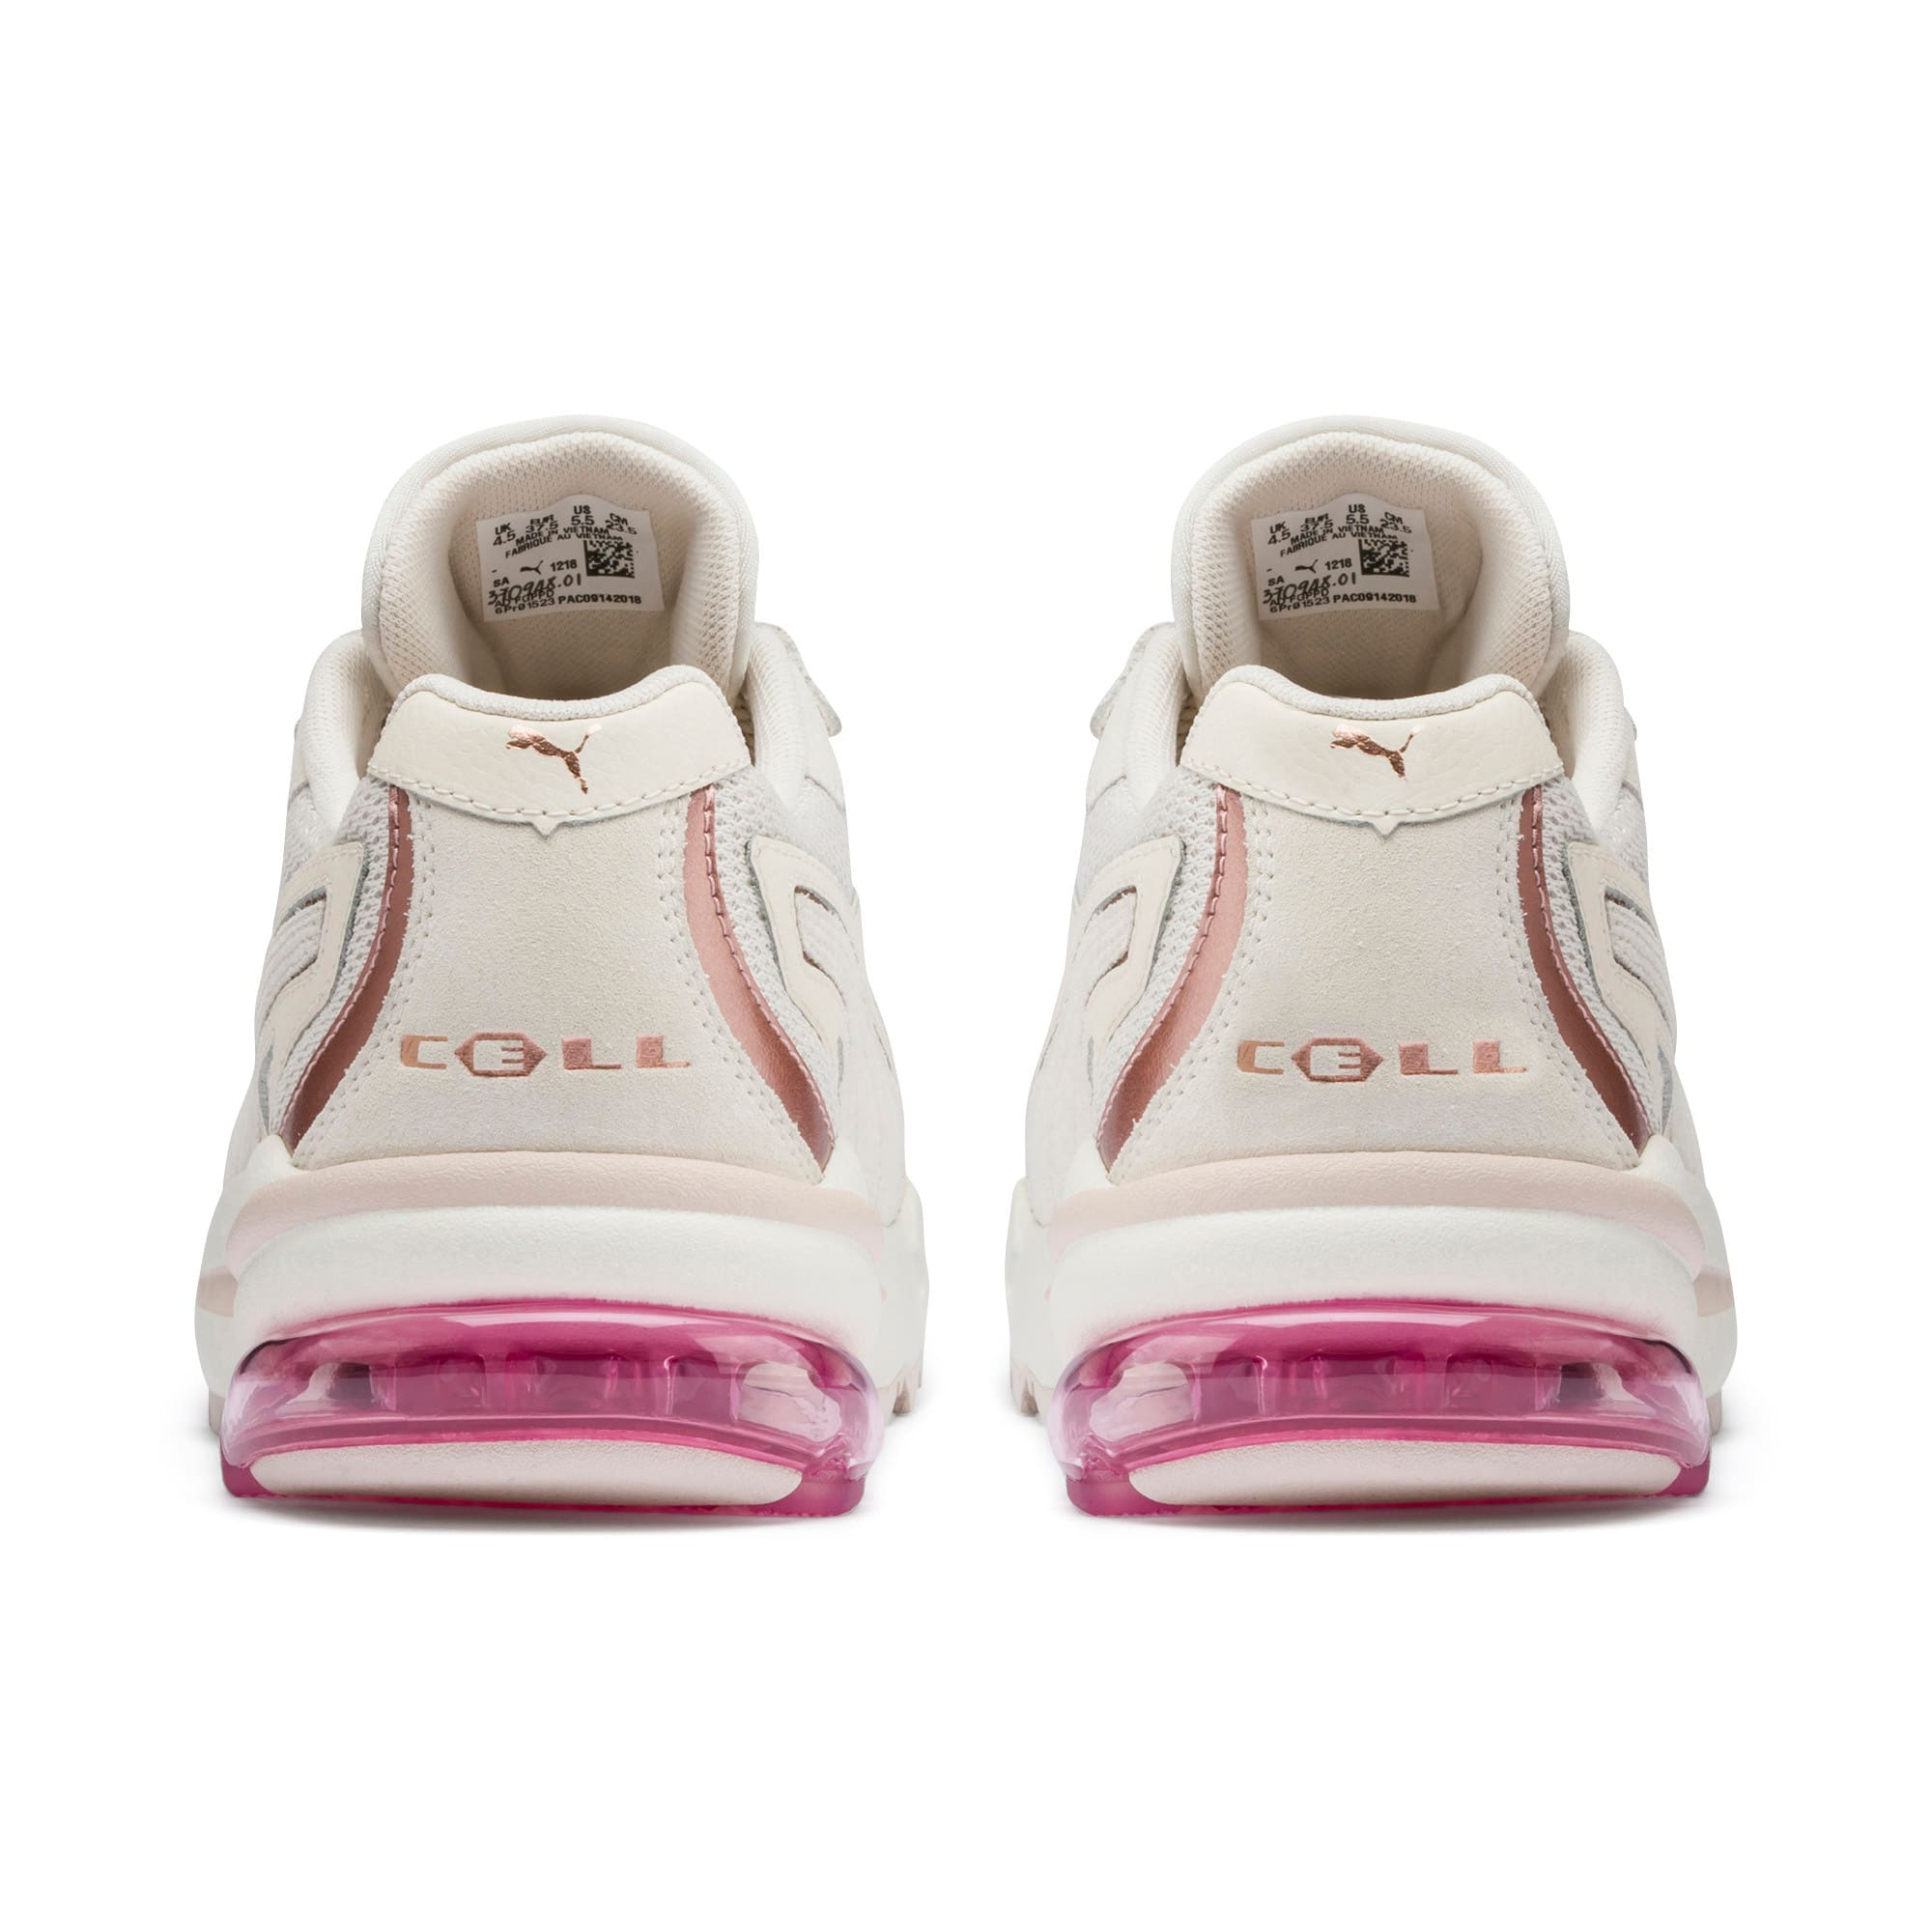 Thumbnail 4 of CELL Stellar Soft Women's Trainers, Pastel Parchment-Rose Gold, medium